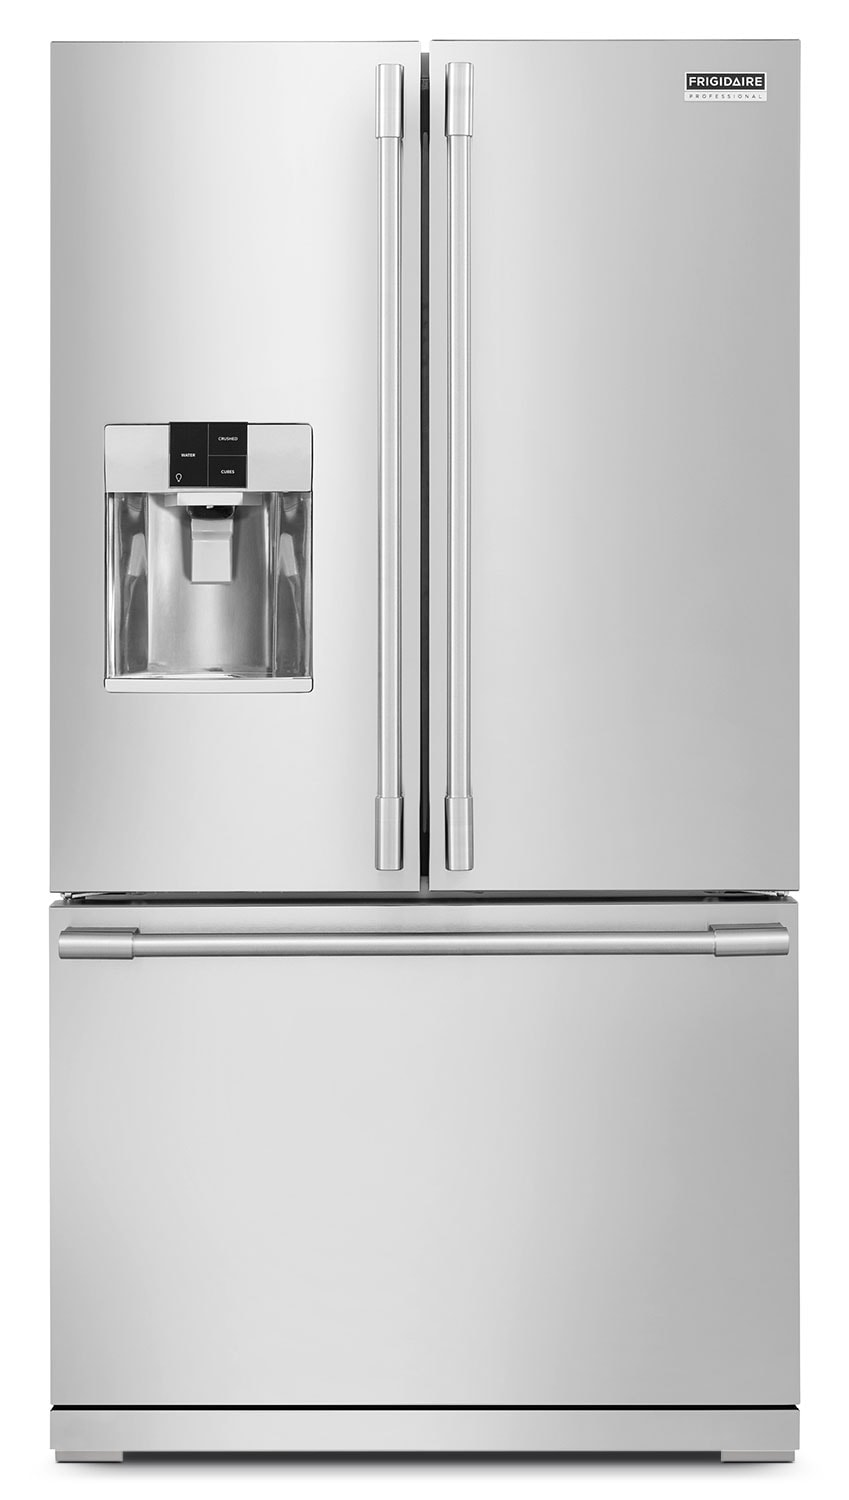 Refrigerators and Freezers - Frigidaire® Professional® 27.8 Cu. Ft. French Door Refrigerator - Stainless Steel